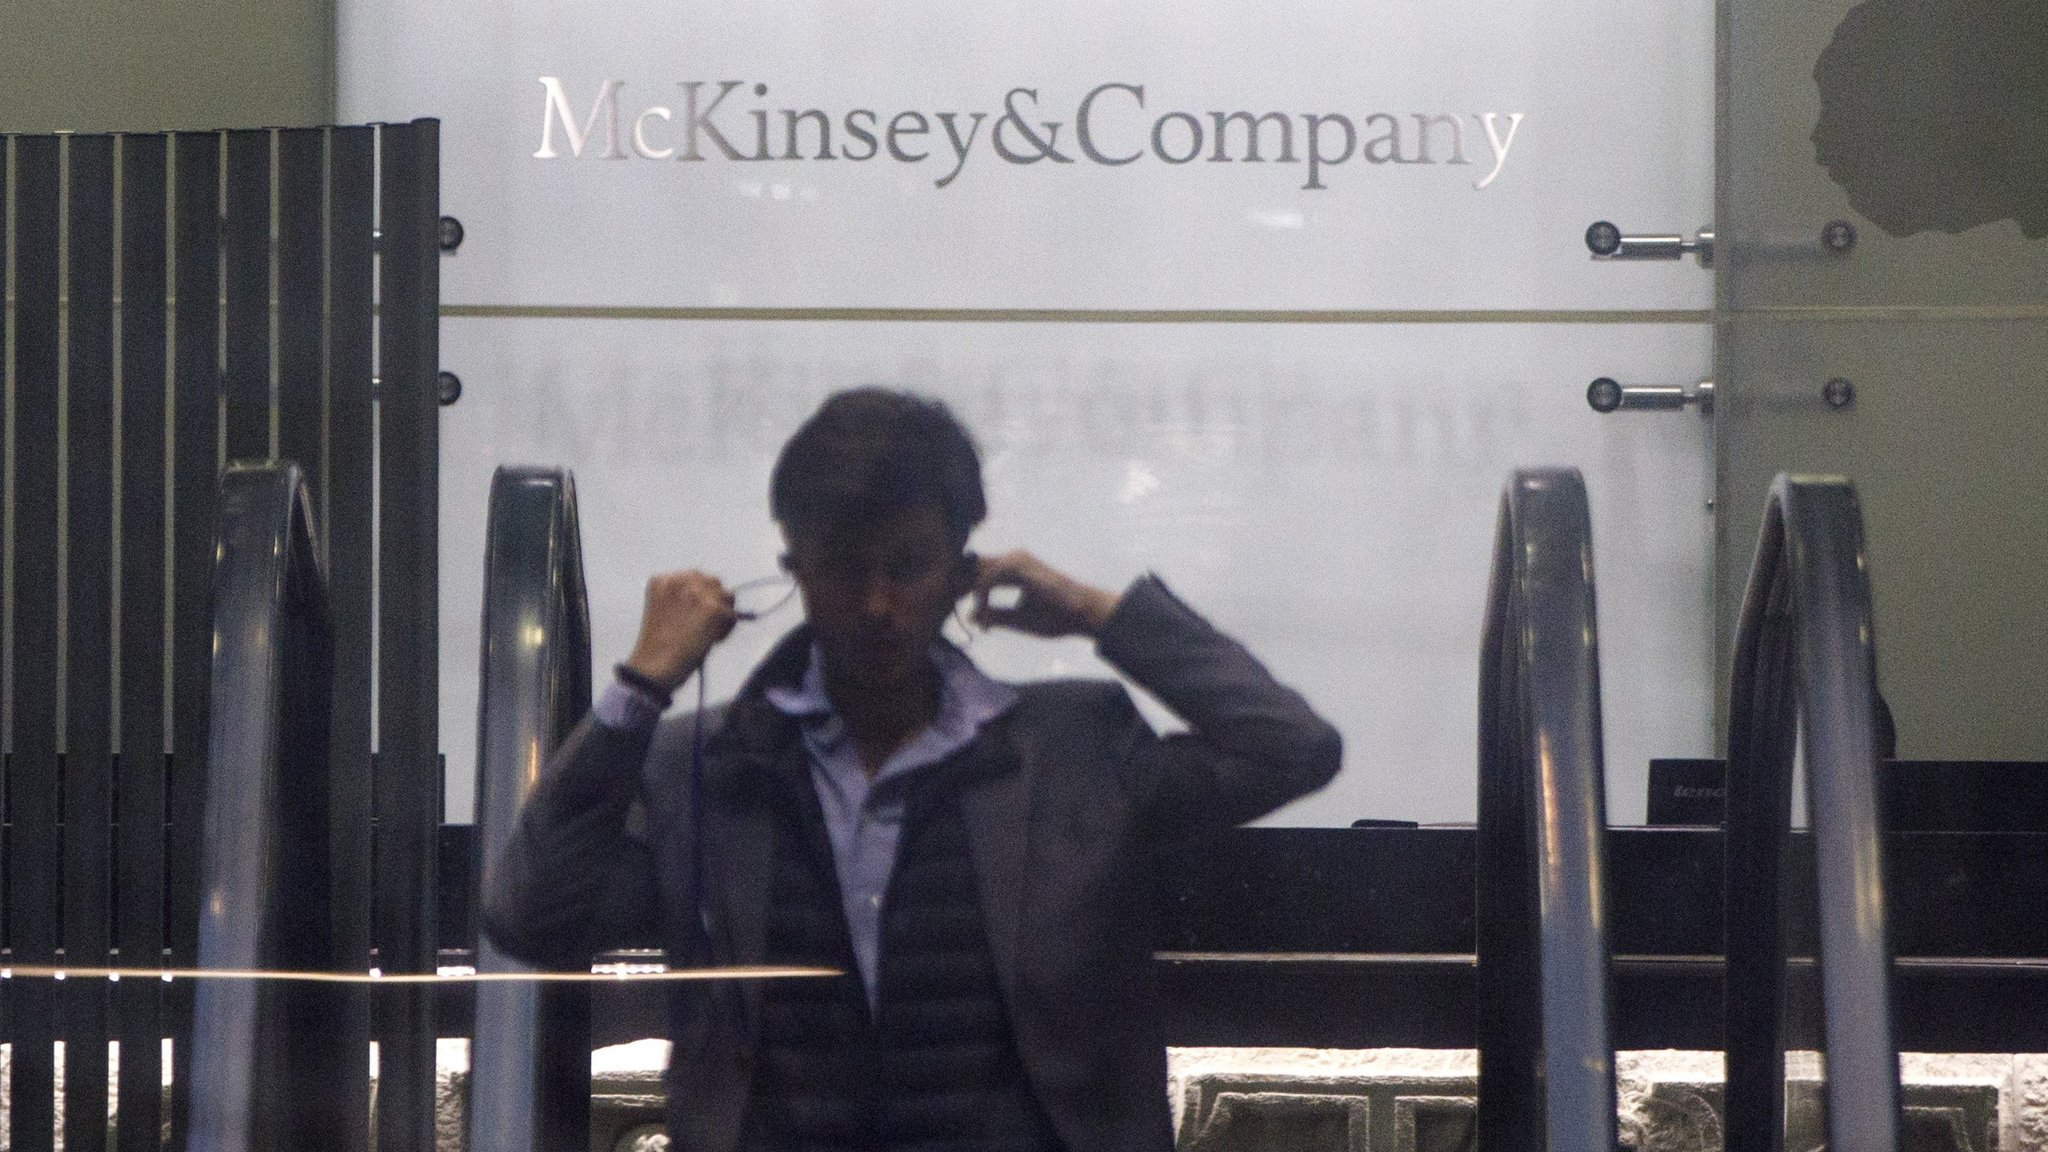 McKinsey sued over 'conflicts of interest' in bankruptcy